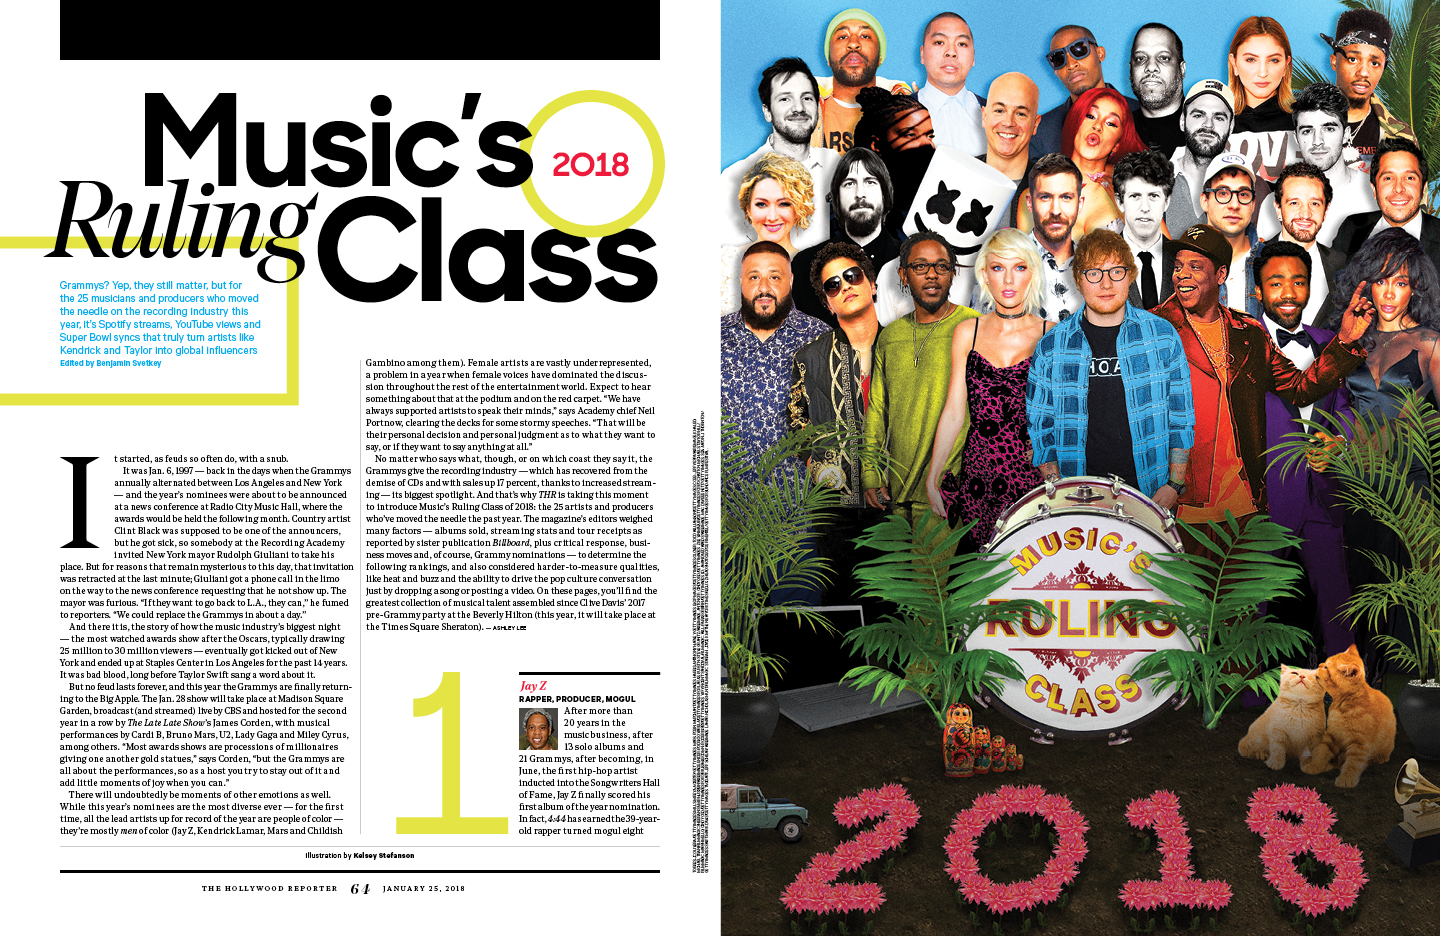 Music's Ruling Class / The Hollywood Reporter / 1.25.18 / kelsey stefanson / art direction + graphic design / yeskelsey.com